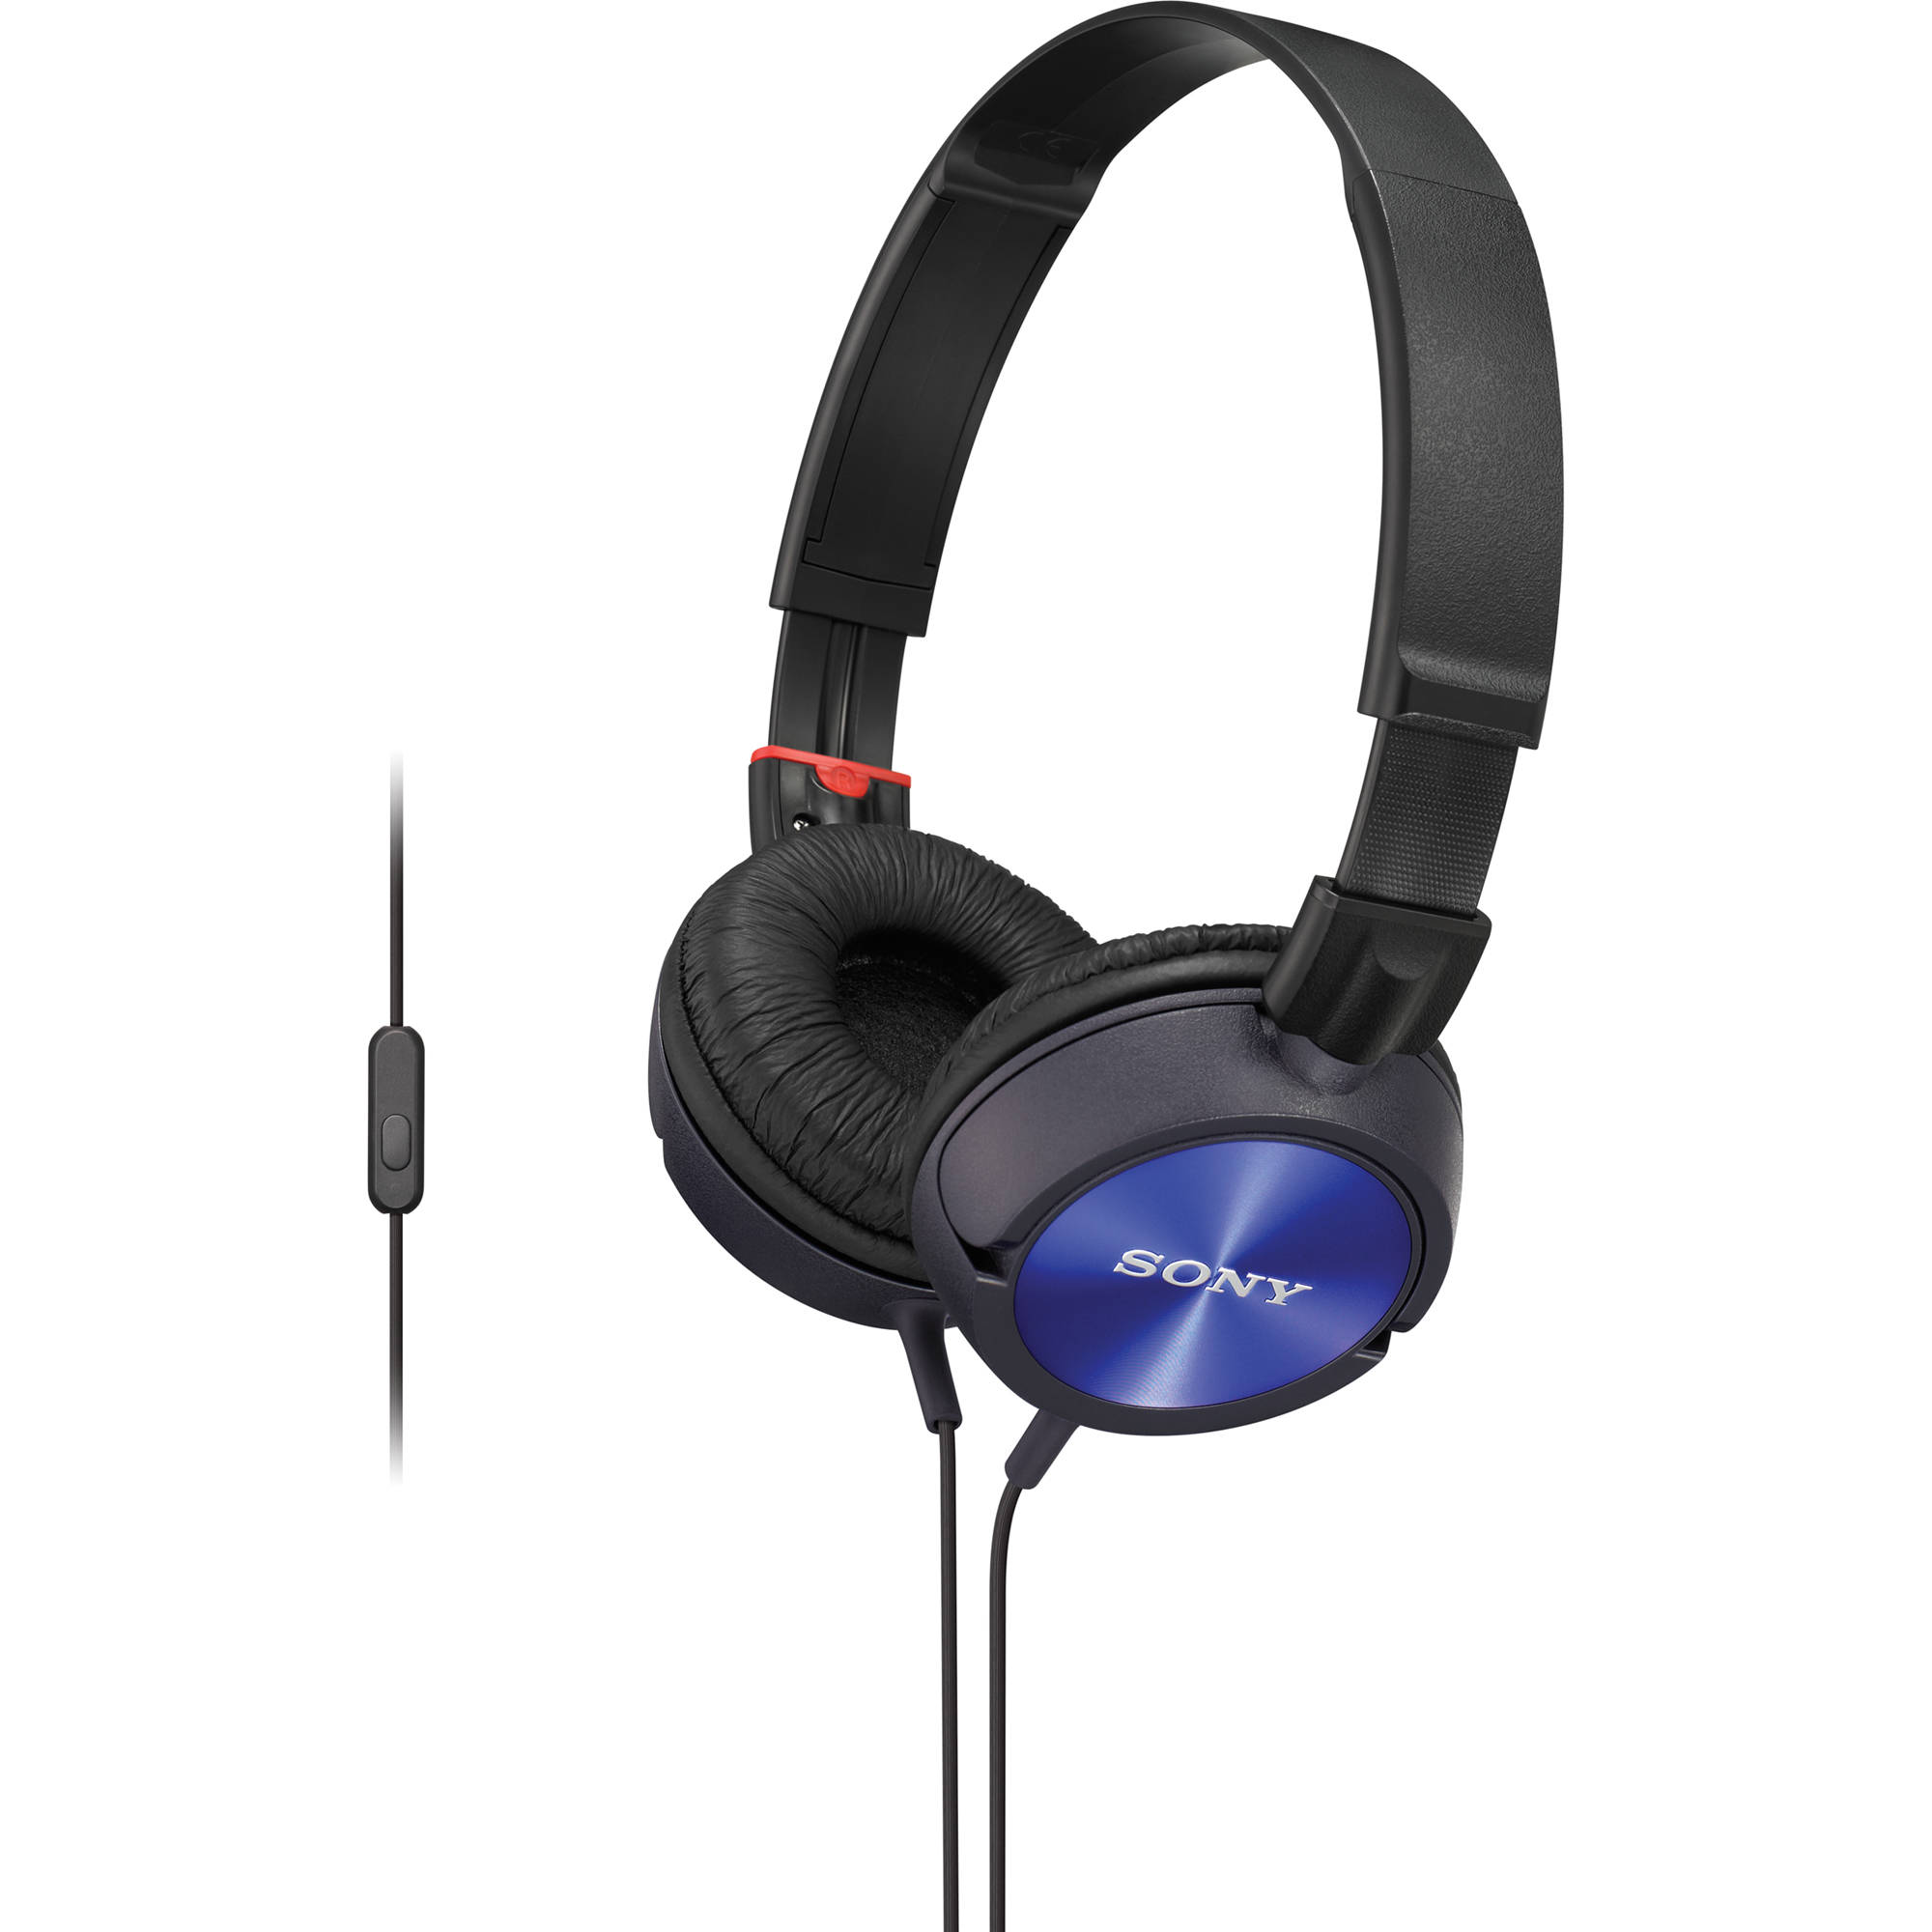 sony mdr zx300ap android stereo headphones blue mdrzx300apl. Black Bedroom Furniture Sets. Home Design Ideas